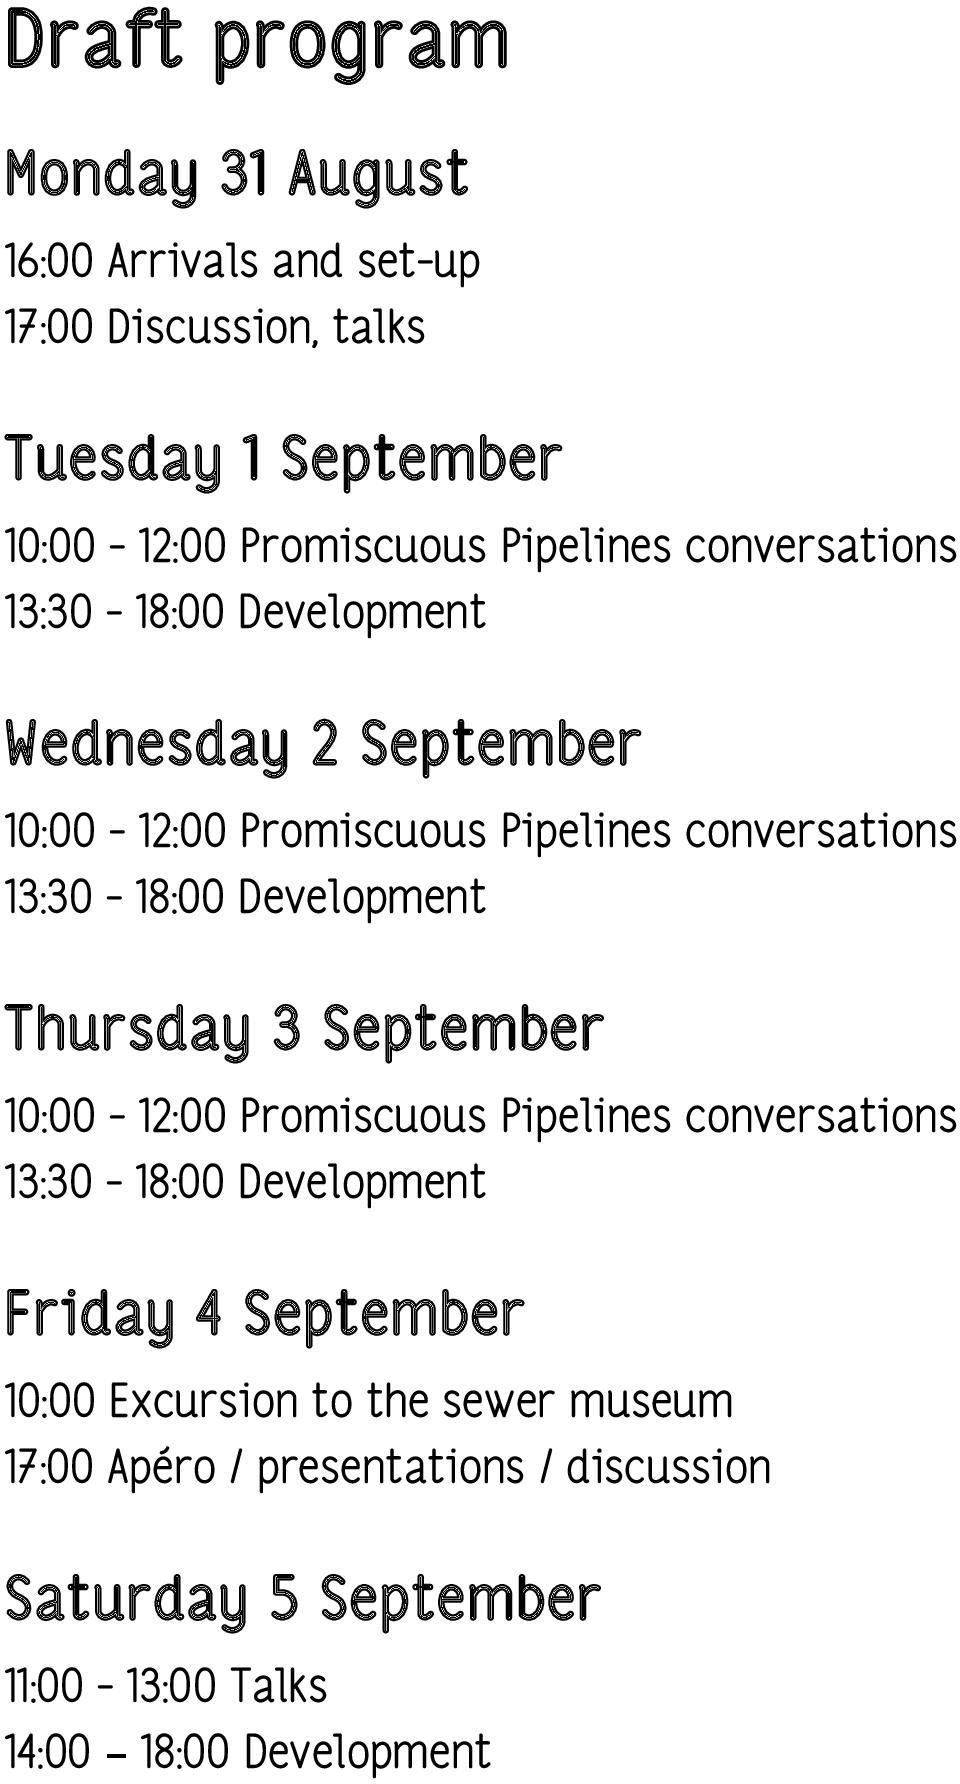 Development Thursday 3 September 10:00-12:00 Promiscuous Pipelines conversations 13:30-18:00 Development Friday 4 September 10:00